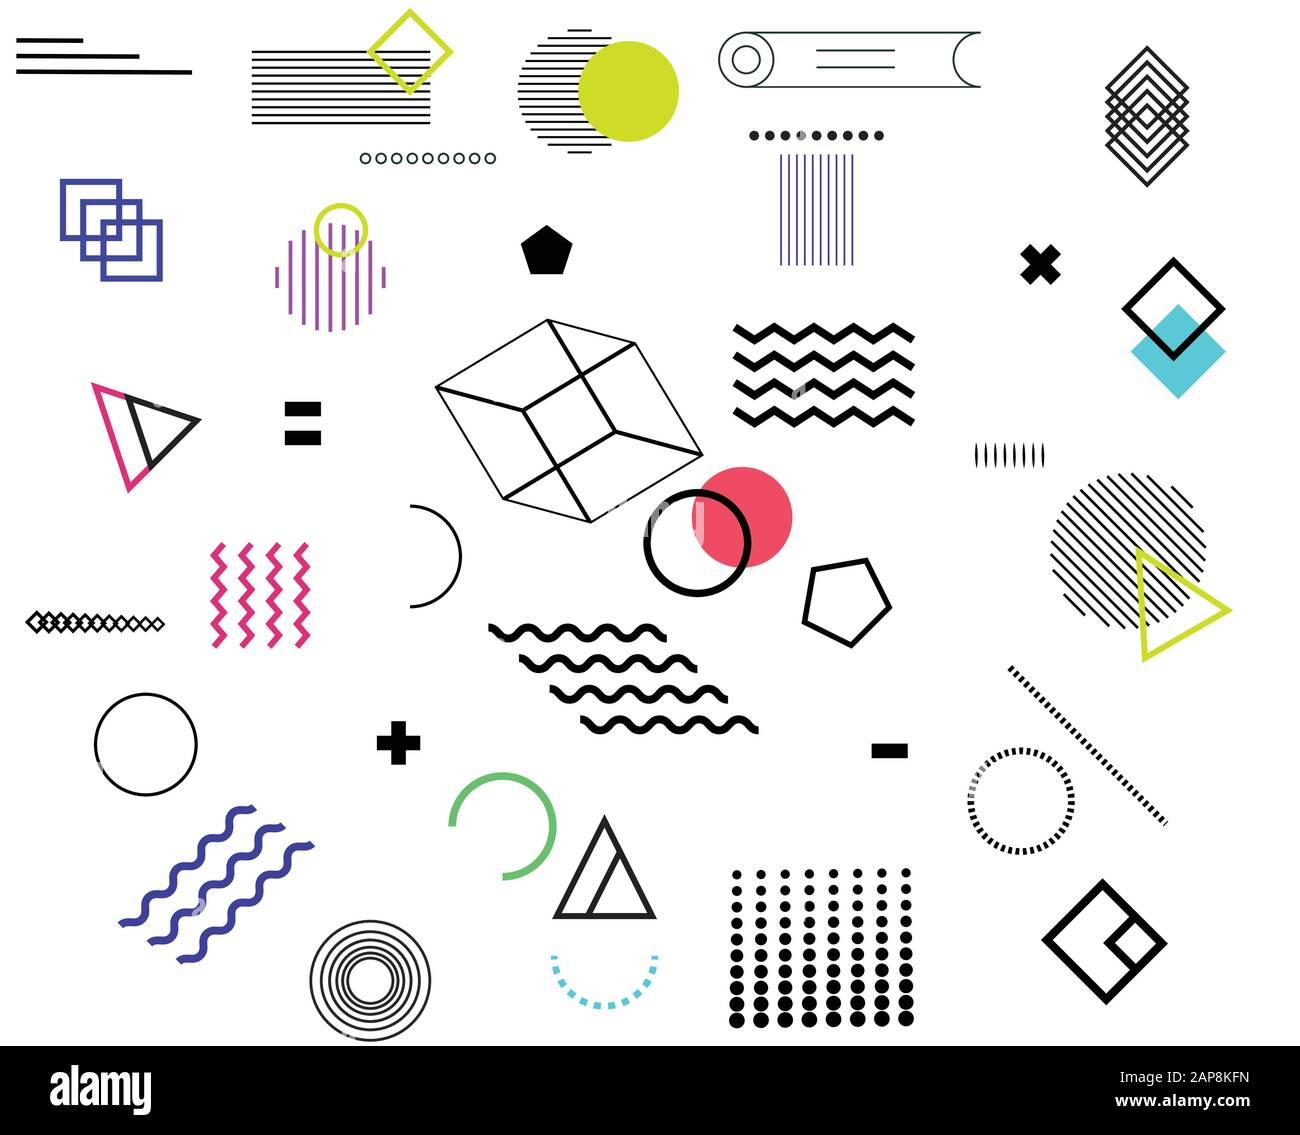 Geometric Design Elements Set Memphis Design Vector Abstract Geometric Line Graphic Shapes Modern Hipster Circle Triangle Template Colorful Illustrat Stock Vector Image Art Alamy,Day Of The Dead Tattoo Designs For Men